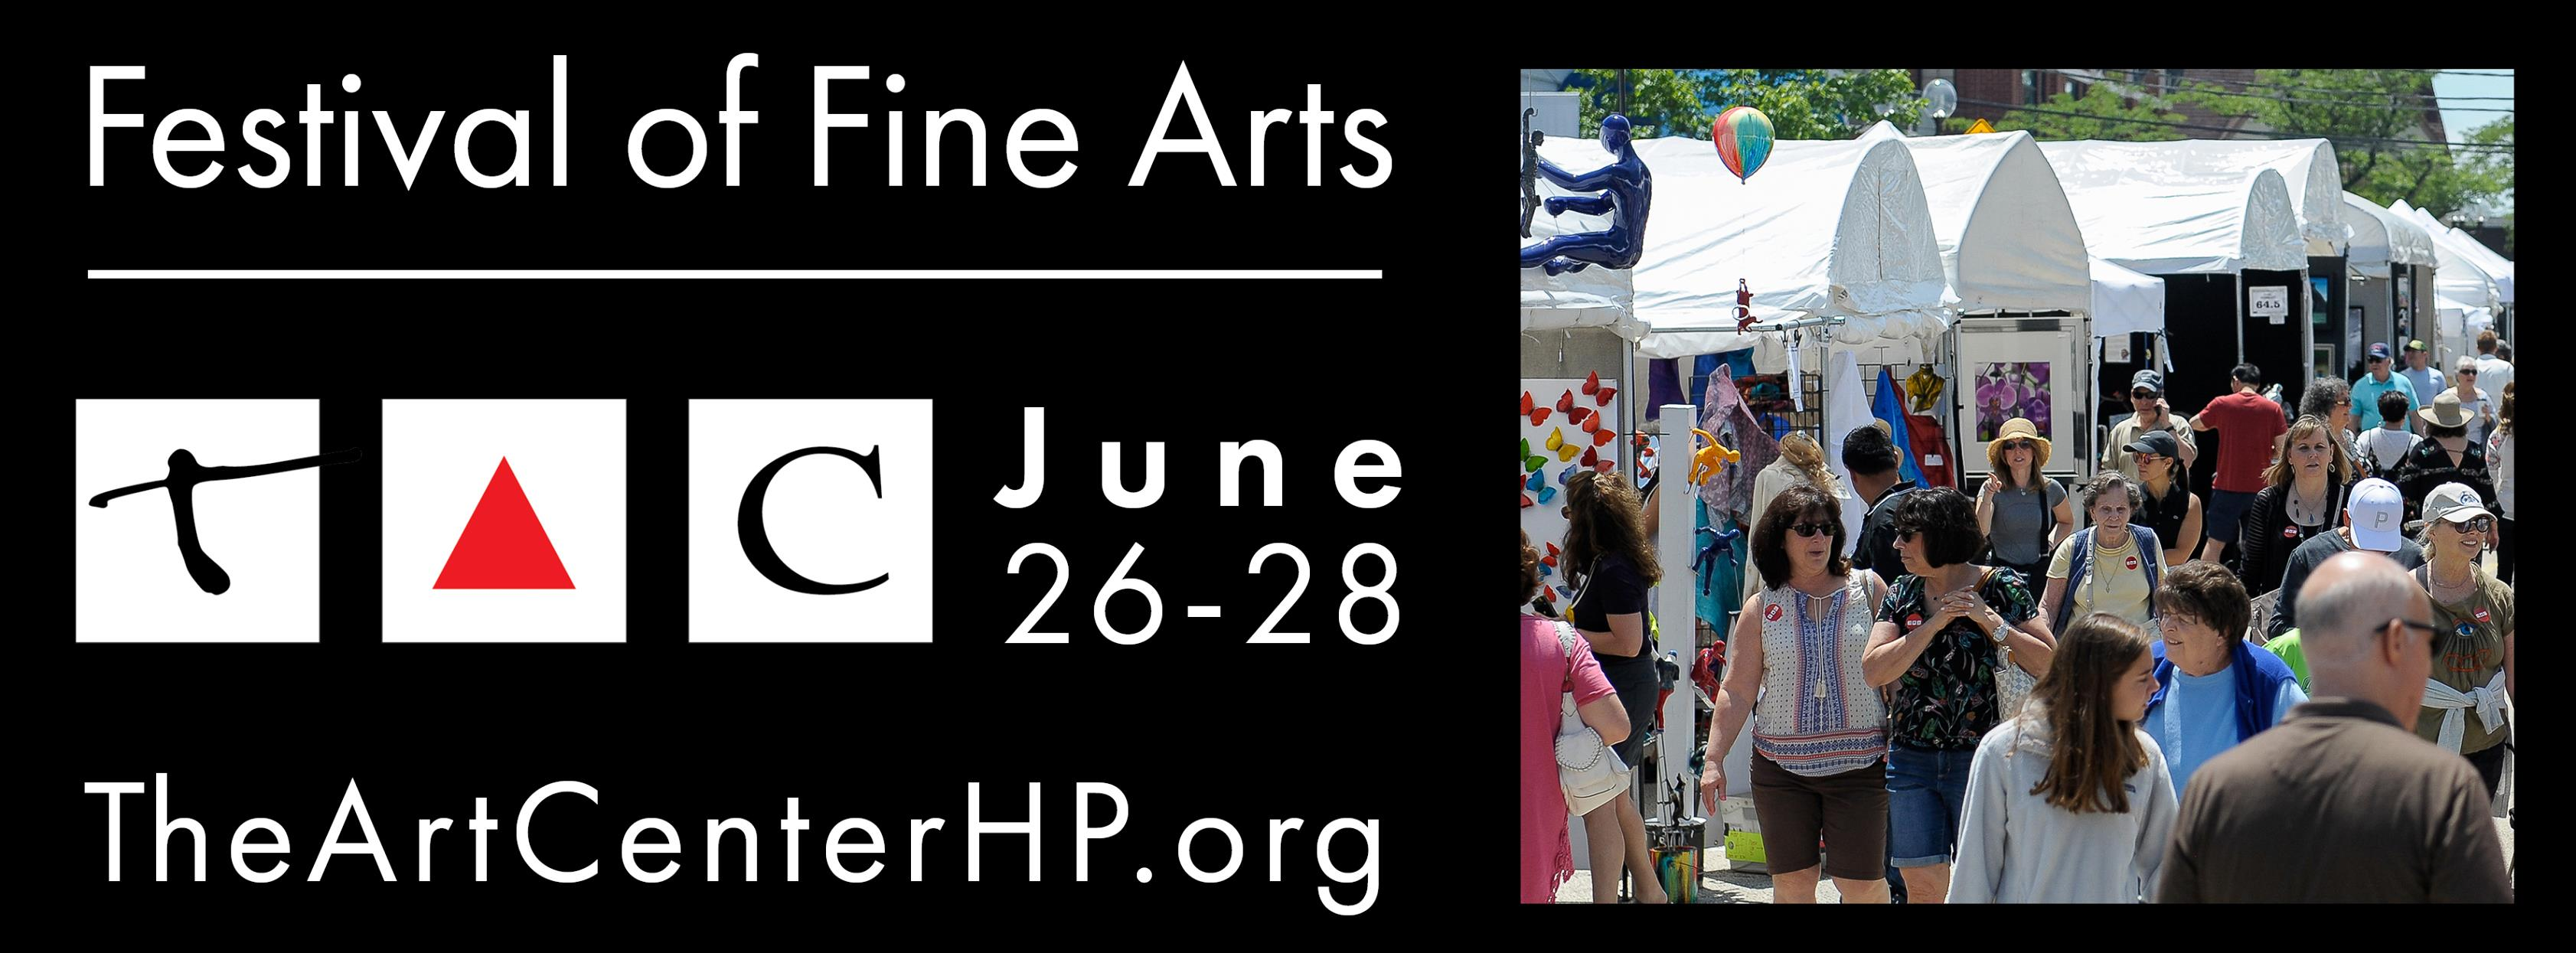 Festival of Fine Arts at The Art Center of Highland Park